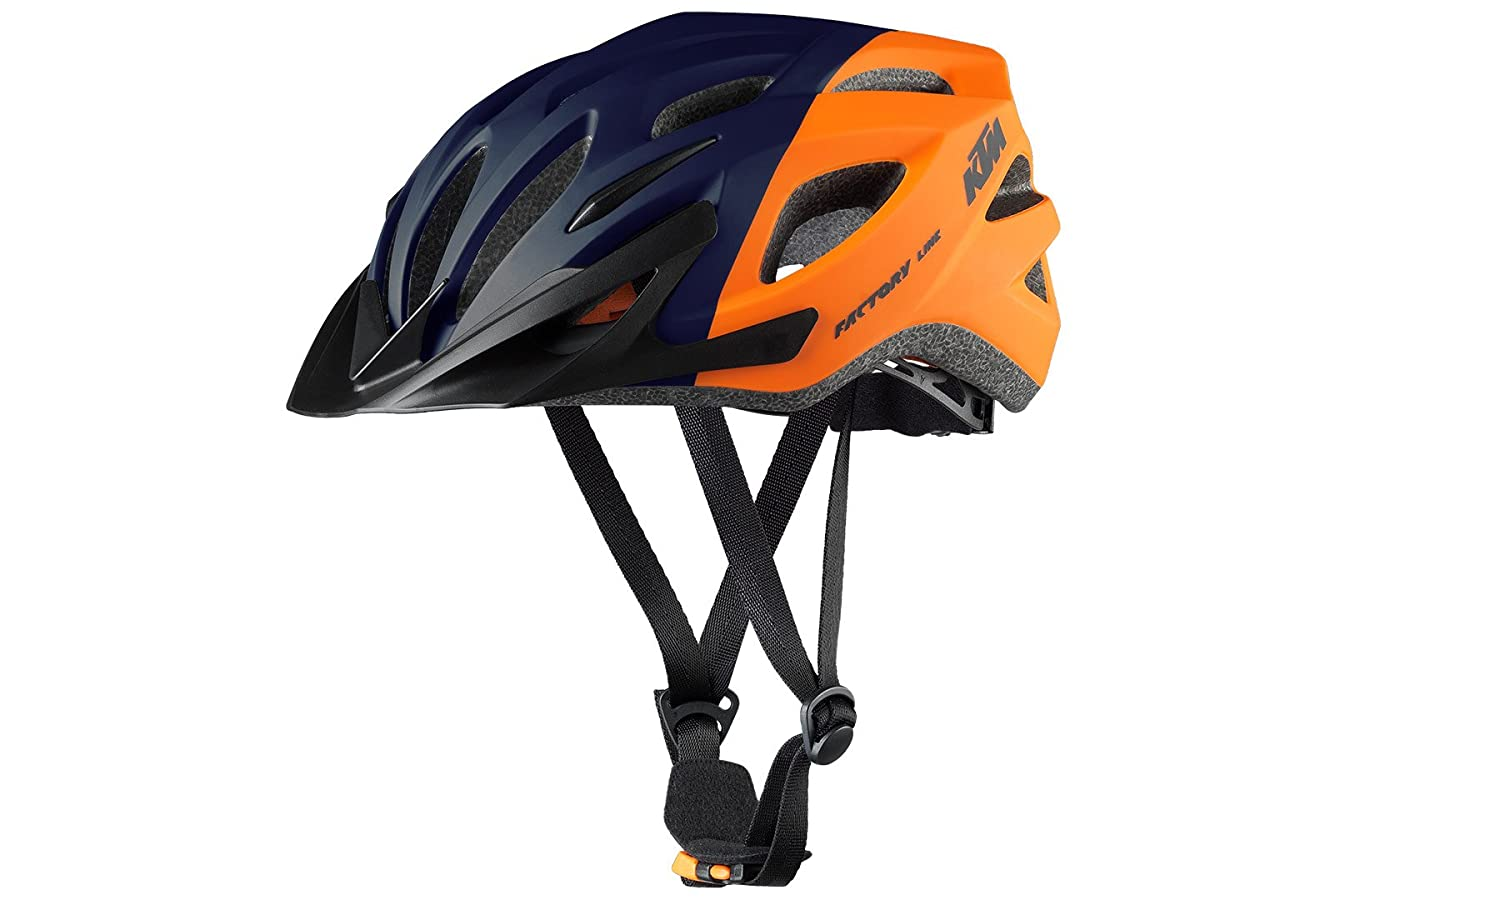 KTM BIKE Fahrrad MTB Helm - FACTORY LINE 2018 - Gr. 58-62 - Orange Dunkelblau - Matt (8-006)